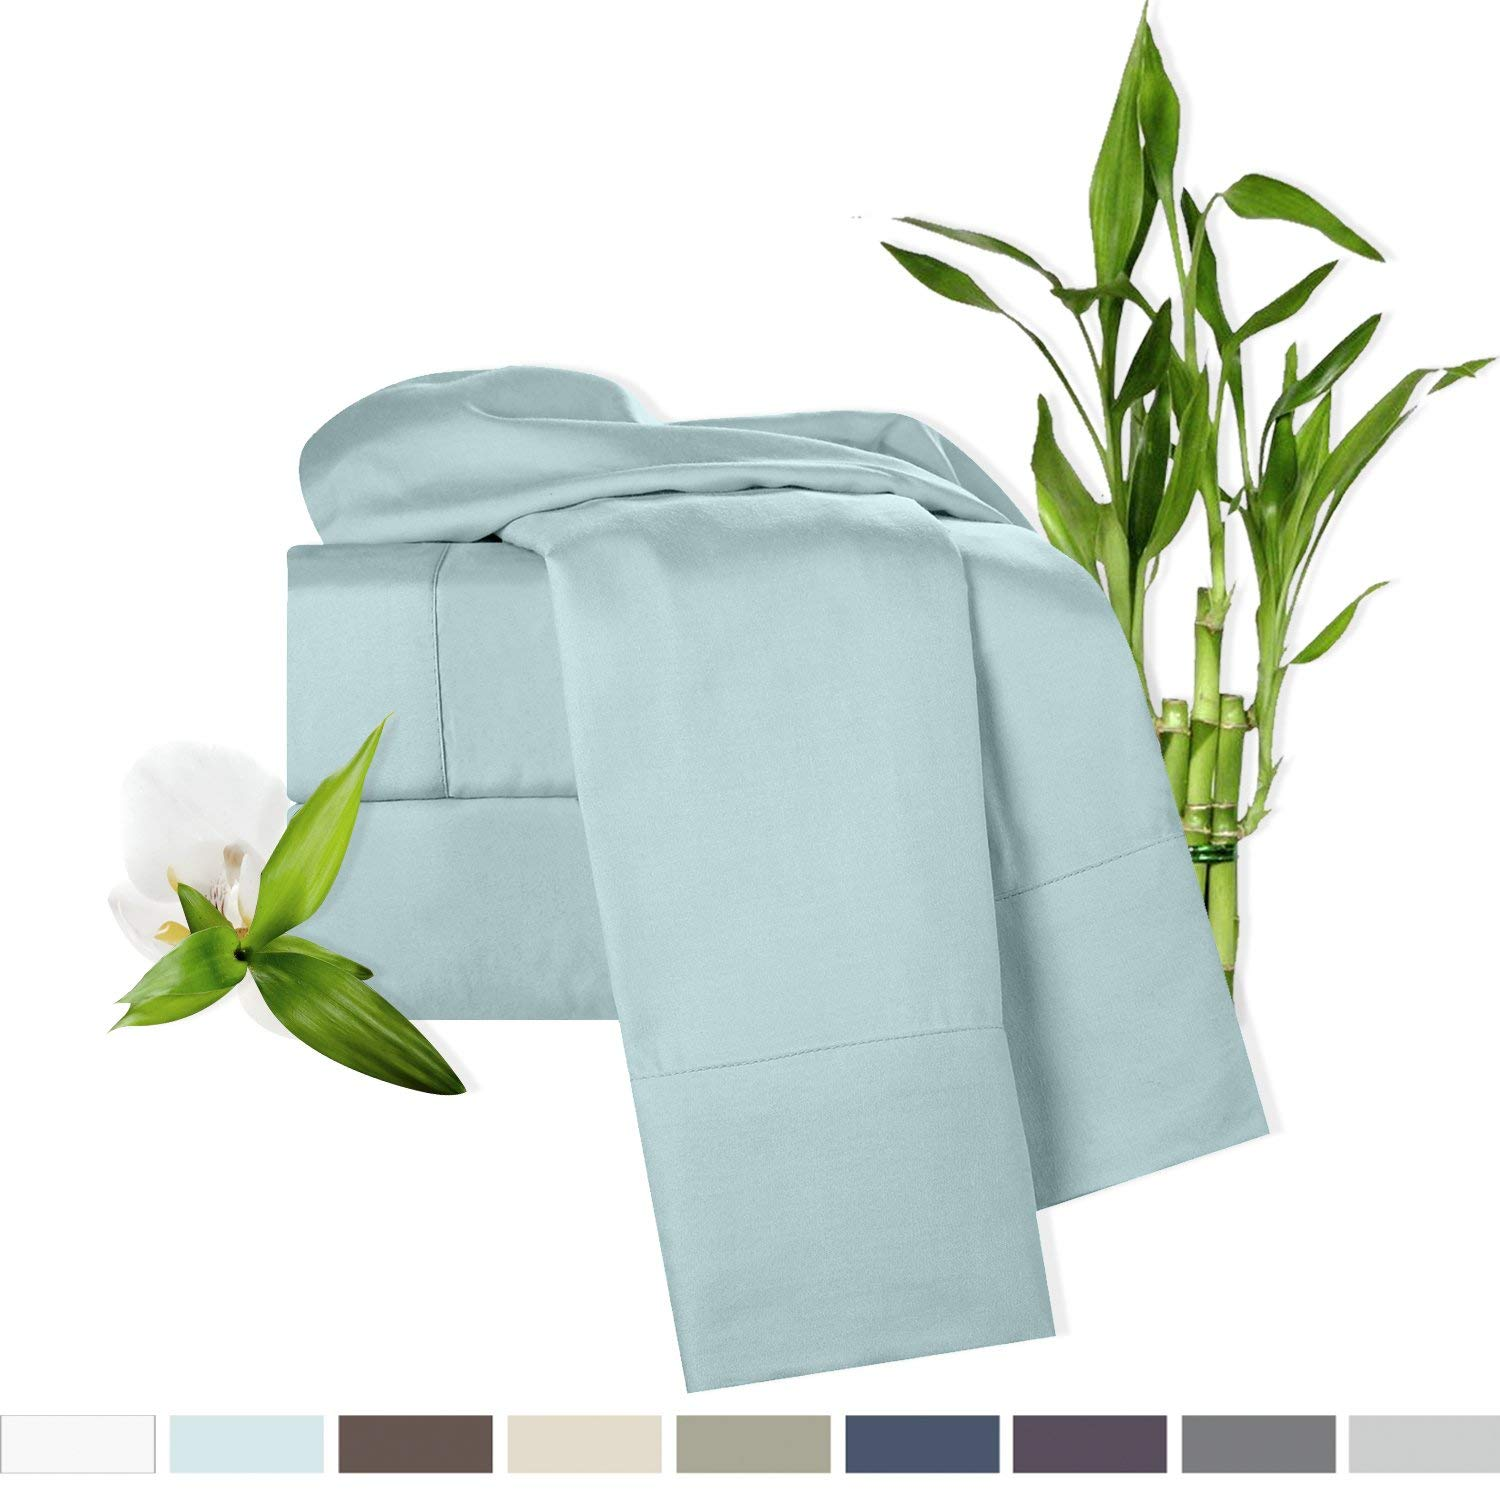 Bamboo Bed Sheet Set, Light Blue (Aqua), King Size, By Clara Clark, 100% Rayon Made From Bamboo Sheets, Luxury Super Silky Soft With Extra Thick Corner Elastic Straps On Fitted Sheet, Machine Washable